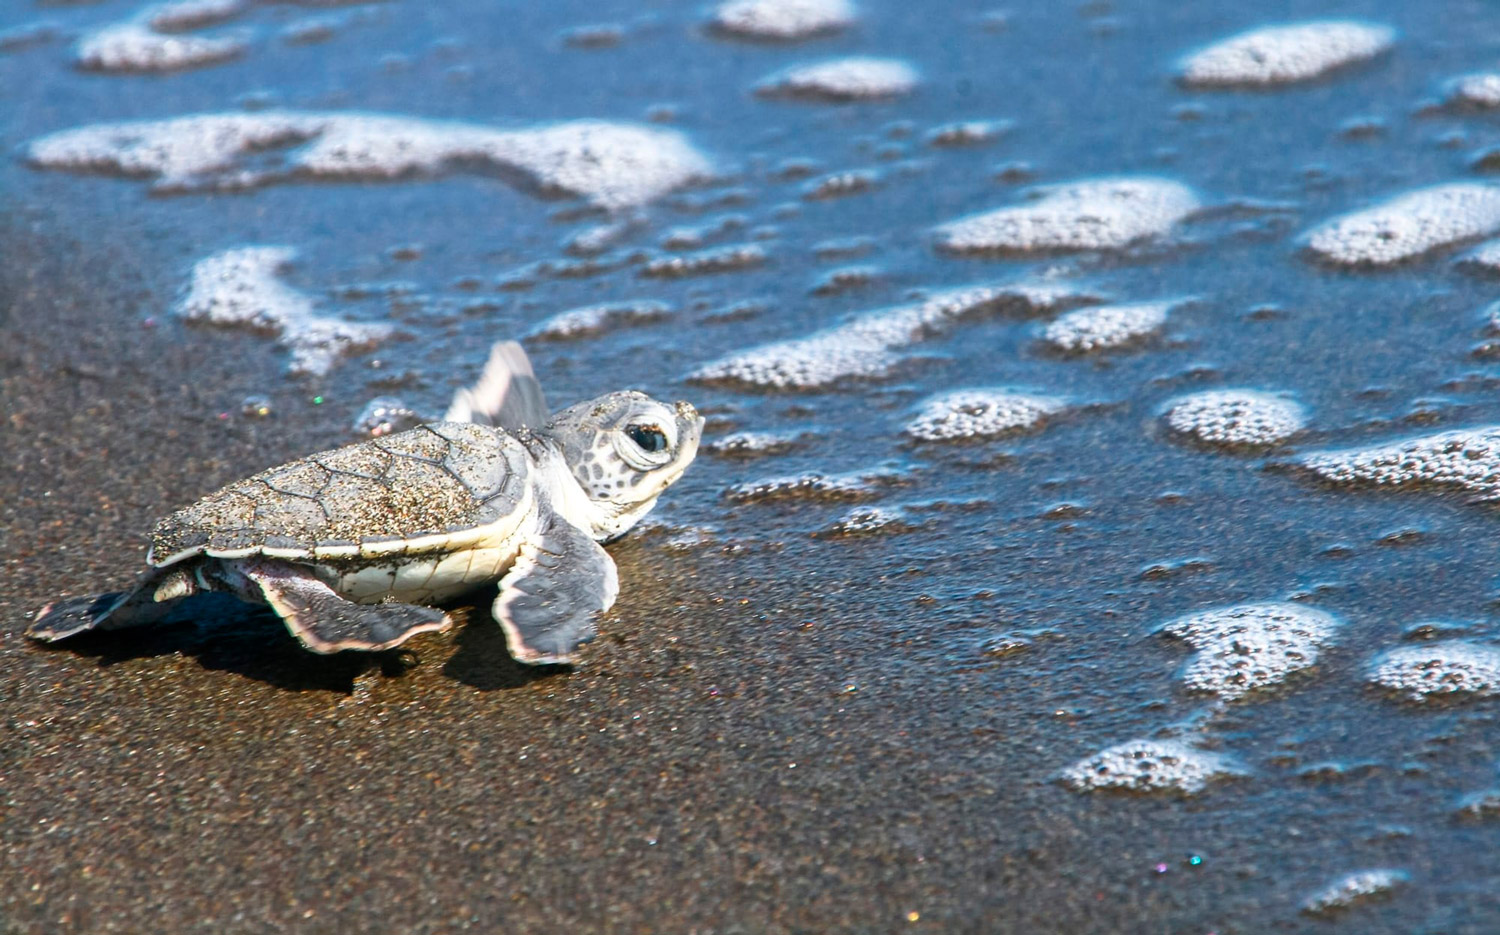 Tortuguero-a-treasured-place-for-visitors-and-turtles